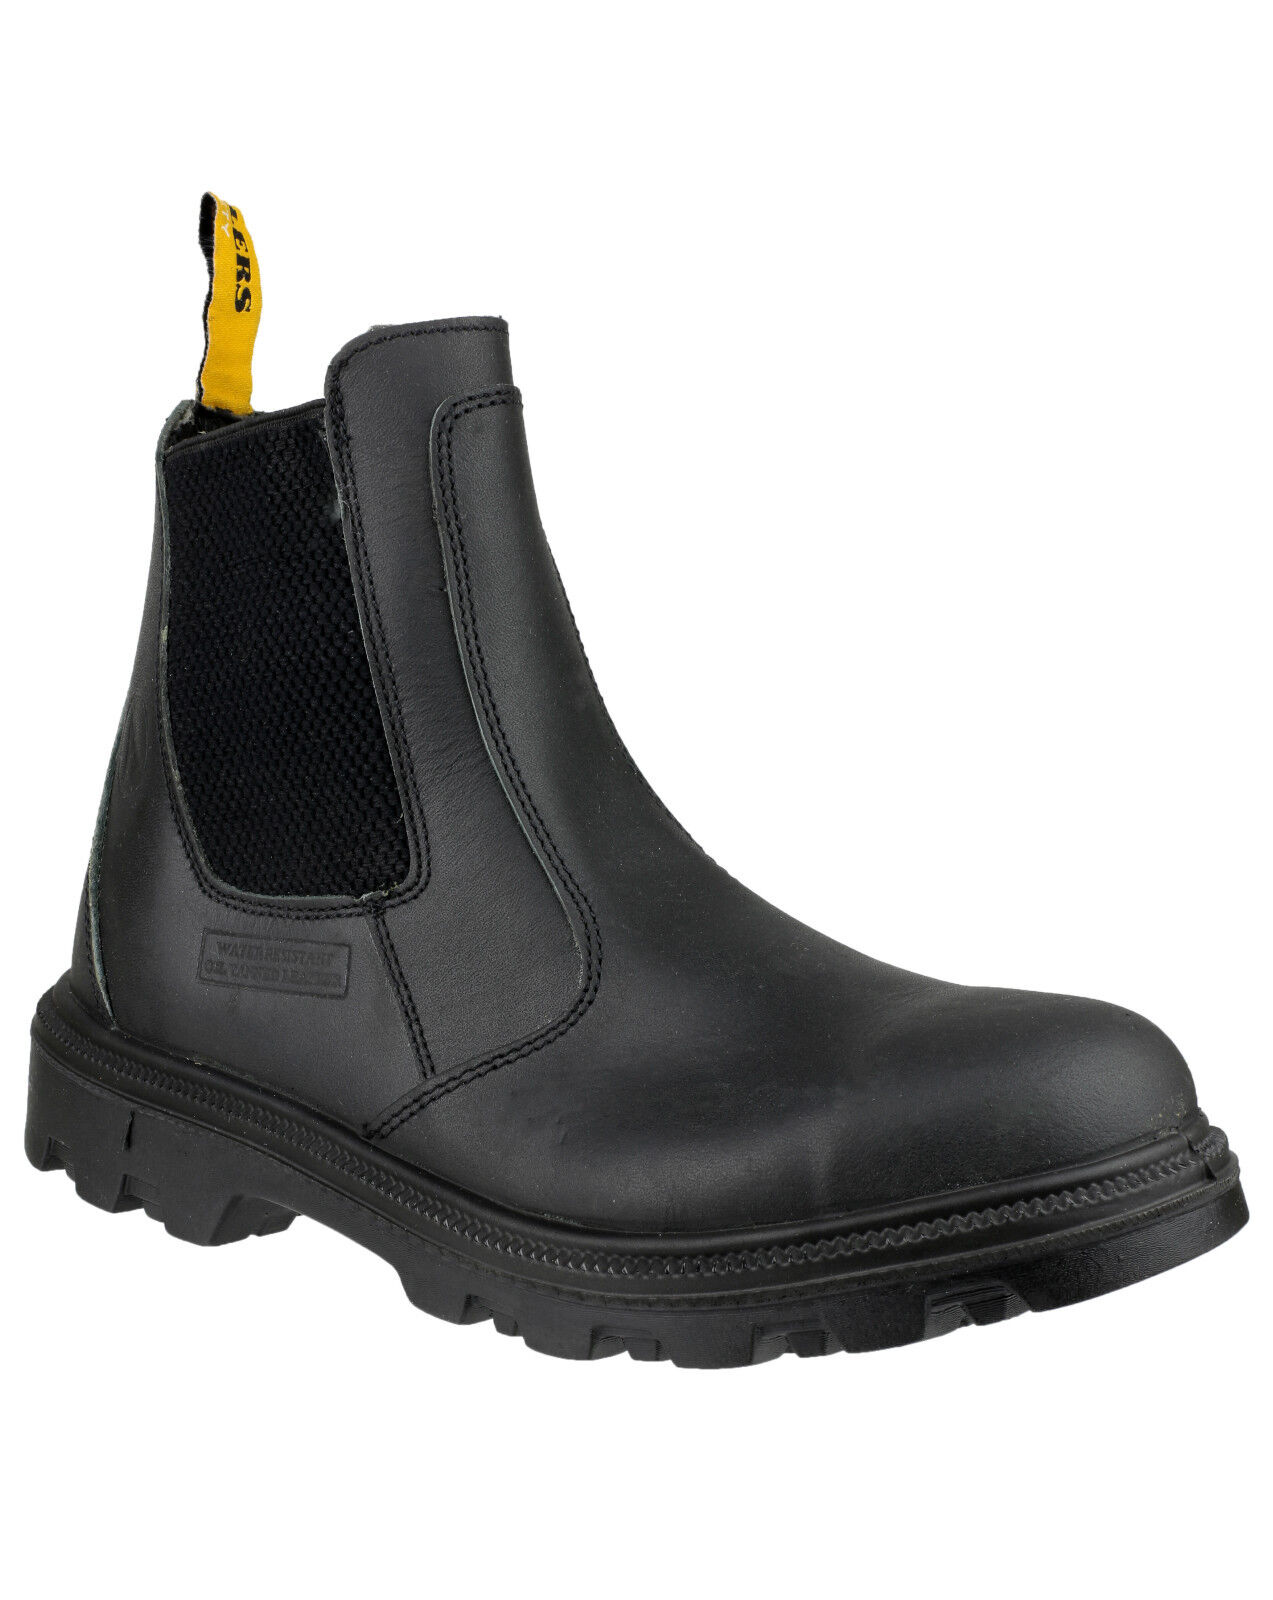 Amblers FS129 Safety Mens Steel Toe Cap Industrial Work shoes Boots UK6-12